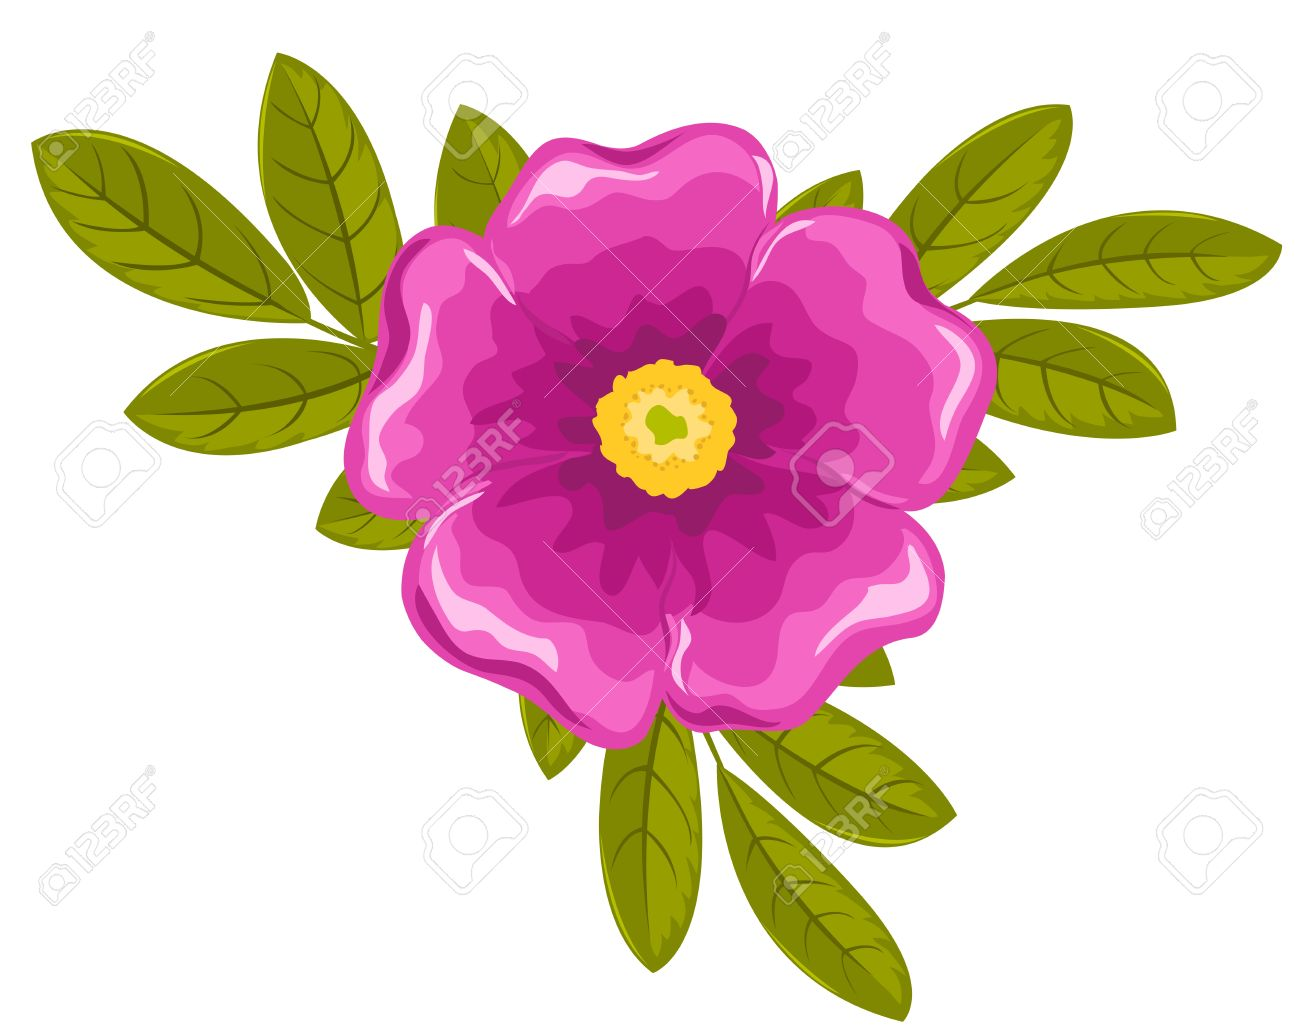 Dogrose clipart #19, Download drawings